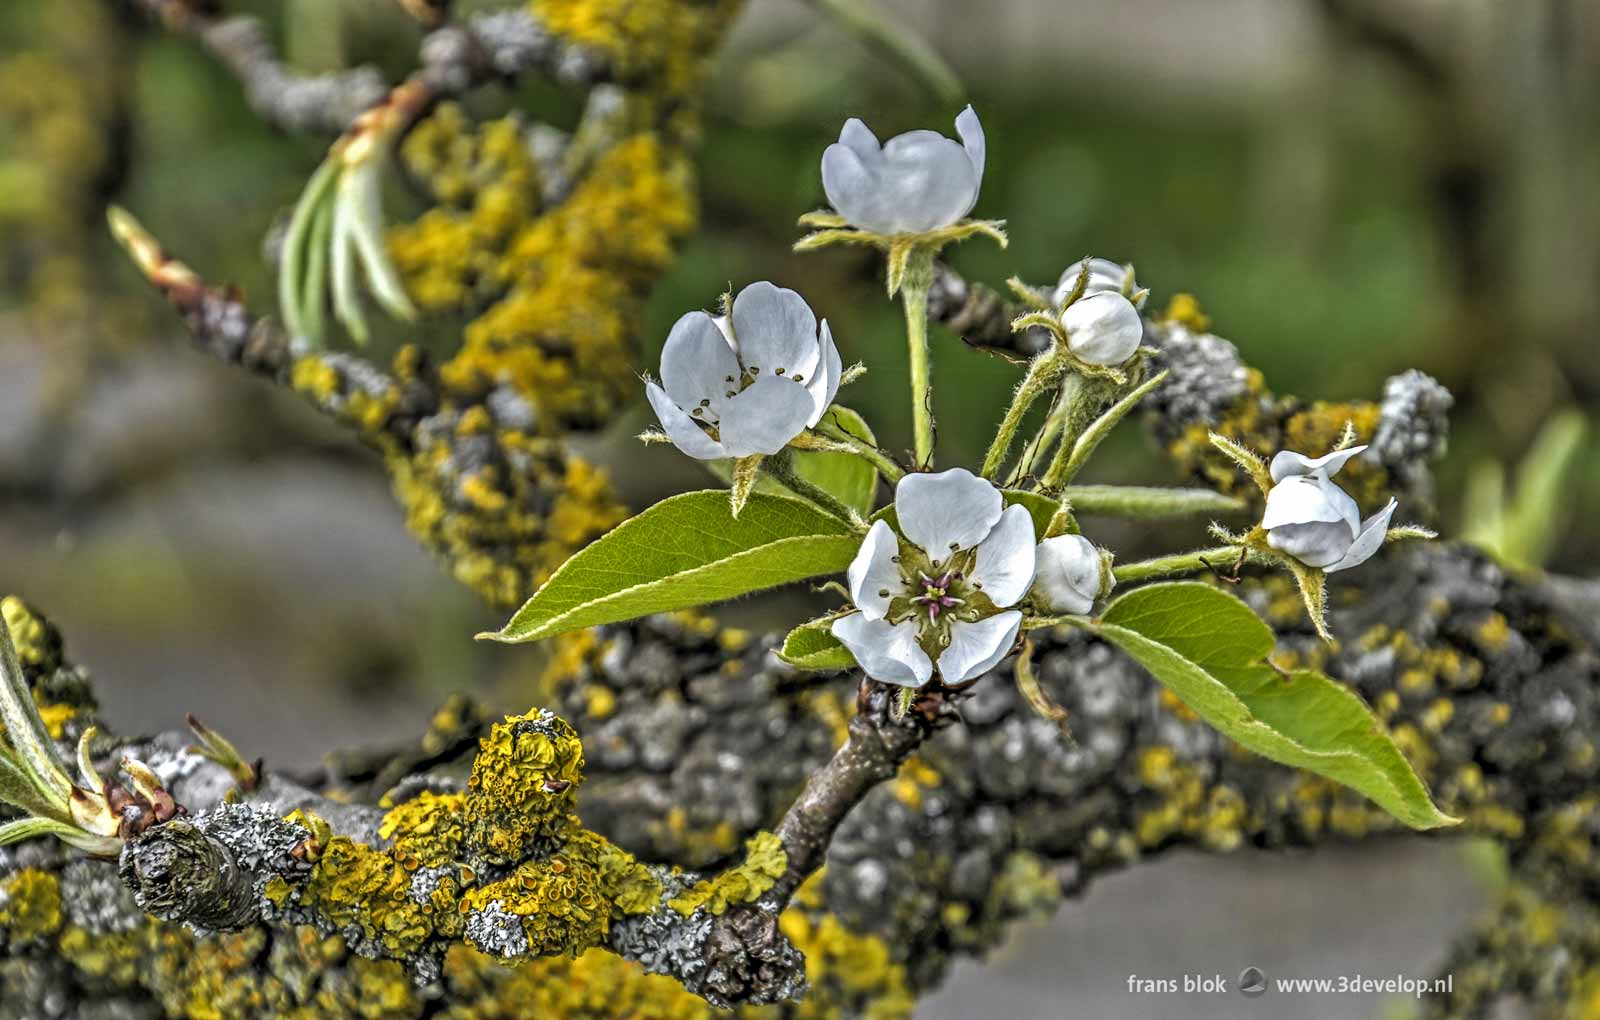 Close-up of pear blossoom in springtime, captured at Diefdijk in the Betuwe region in the Netherlands